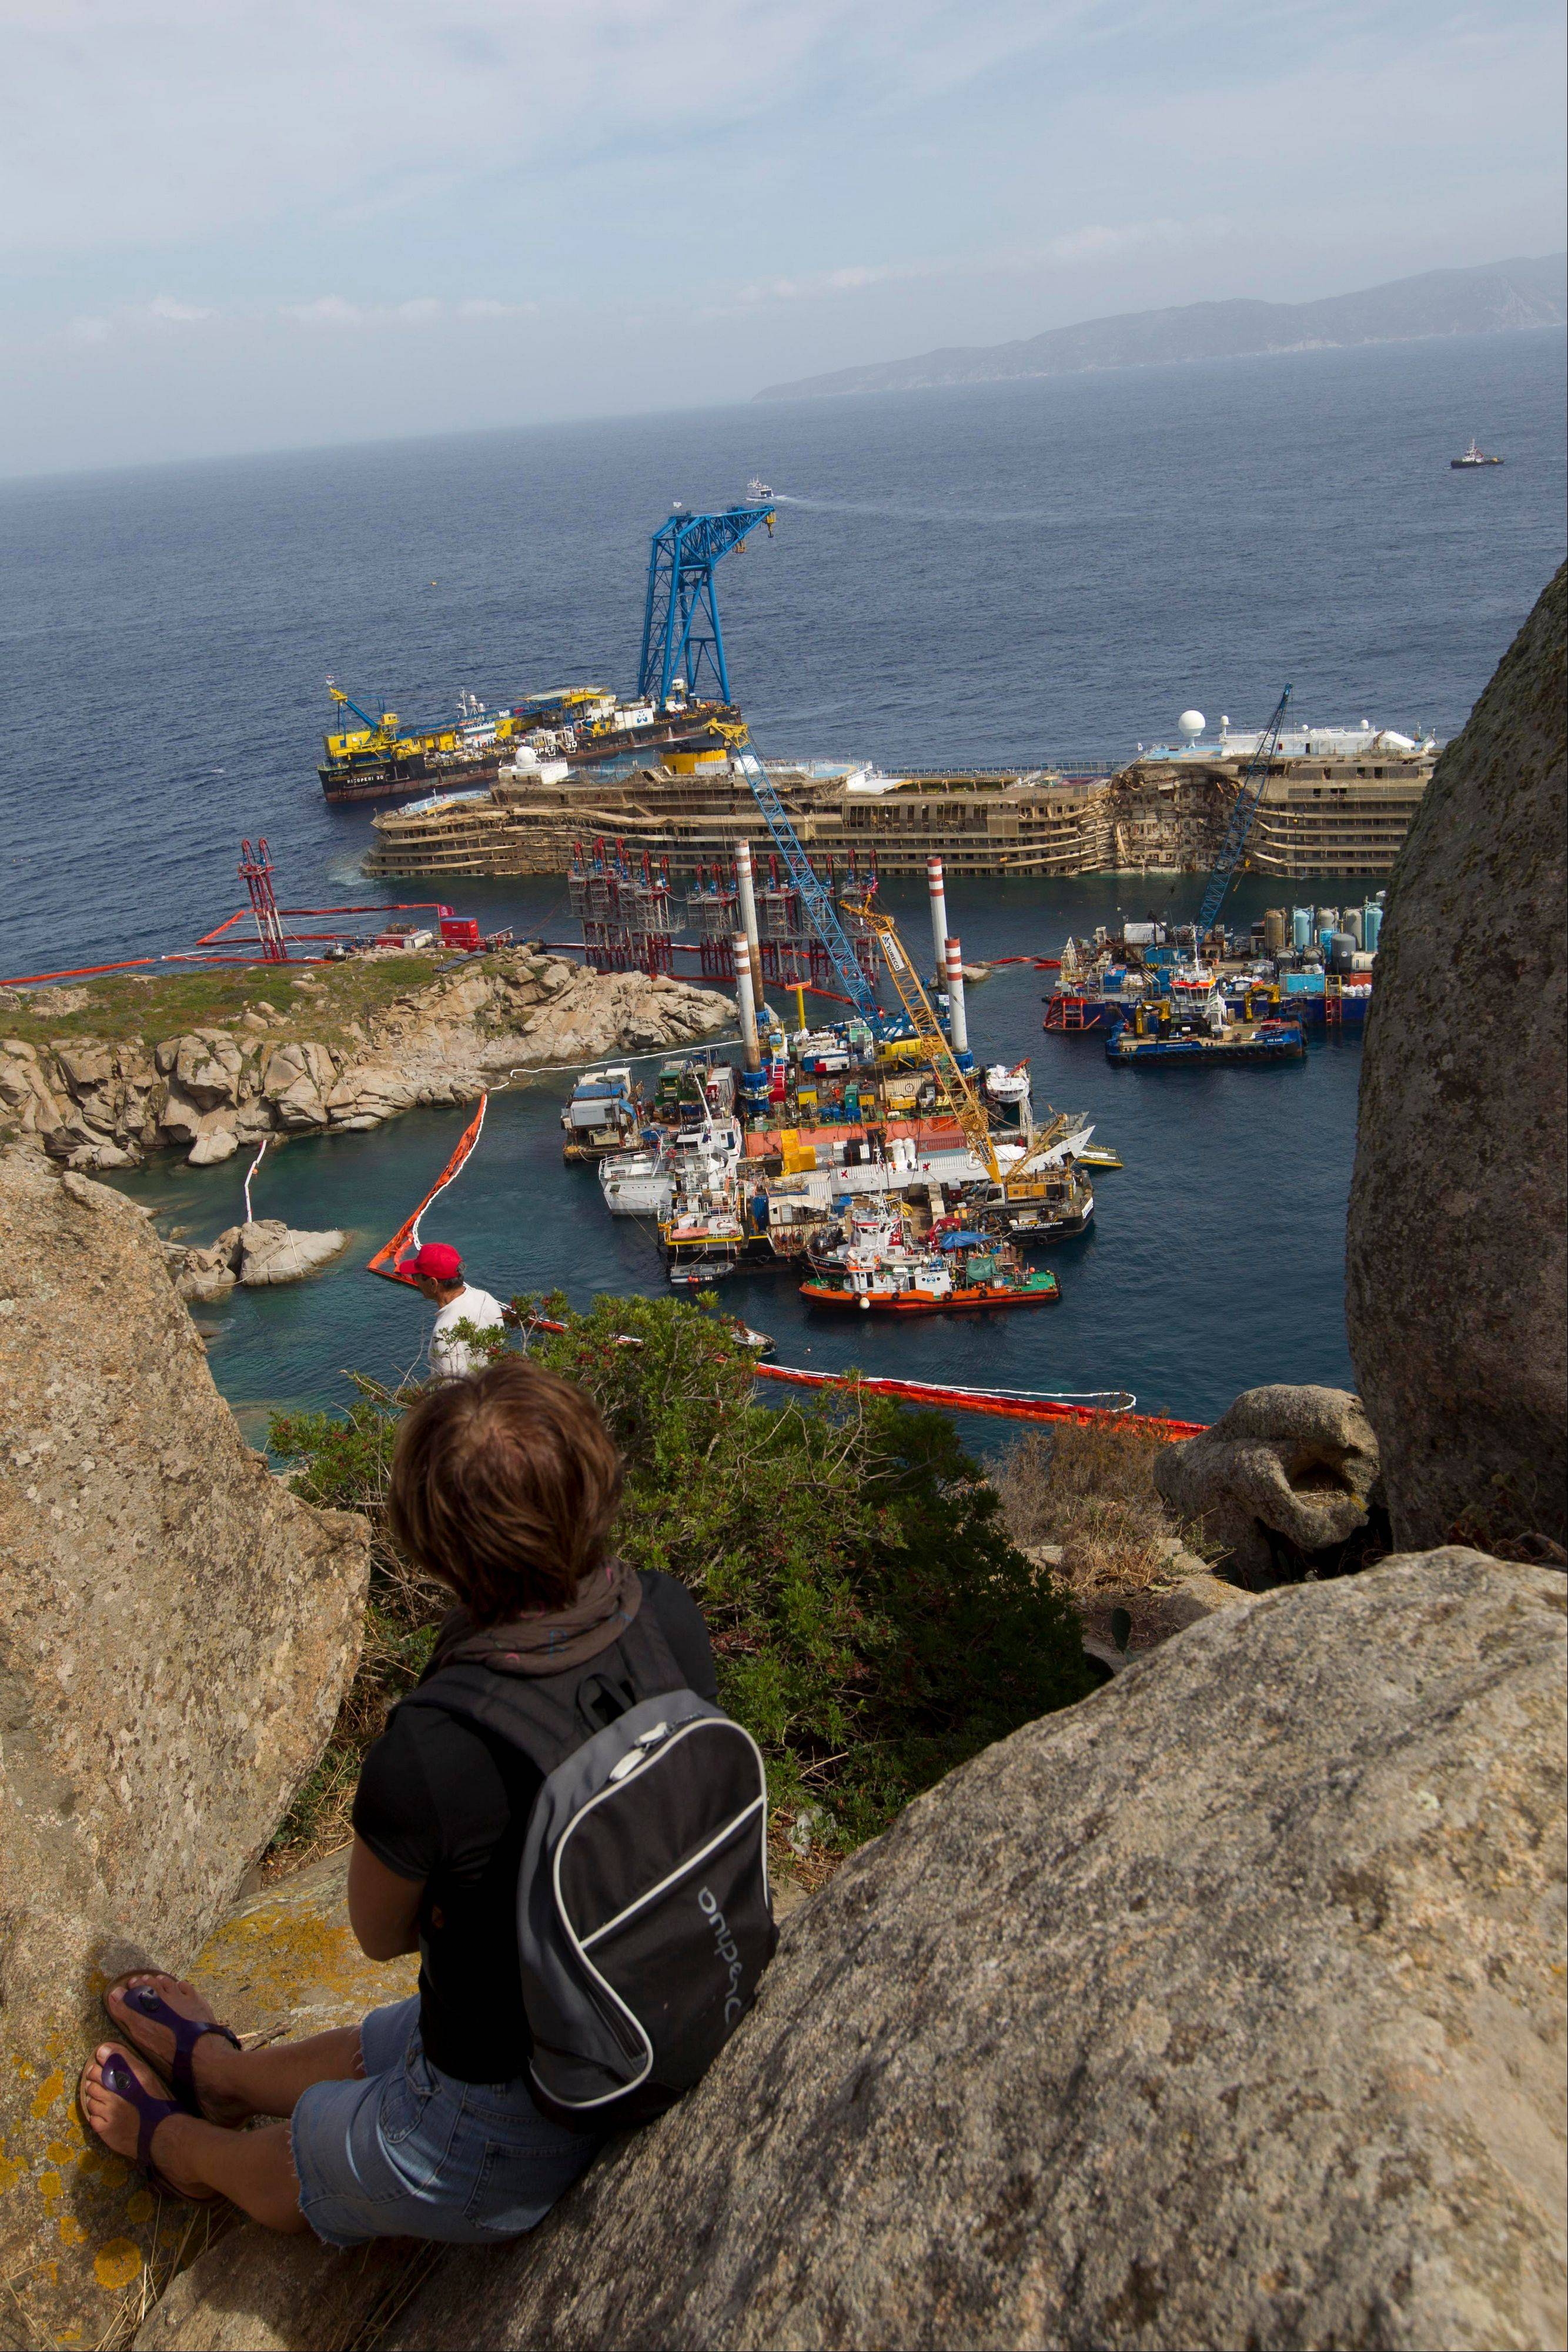 A woman looks at the Costa Concordia is seen after it was lifted upright, on the Tuscan Island of Giglio, Italy, Tuesday, Sept. 17, 2013. Engineers declared success on Tuesday as the Costa Concordia cruise ship was pulled completely upright during a complicated, 19-hour operation to wrench it from its side where it capsized last year off Tuscany, an unprecedented feat that sets the stage for it to be towed away next year.